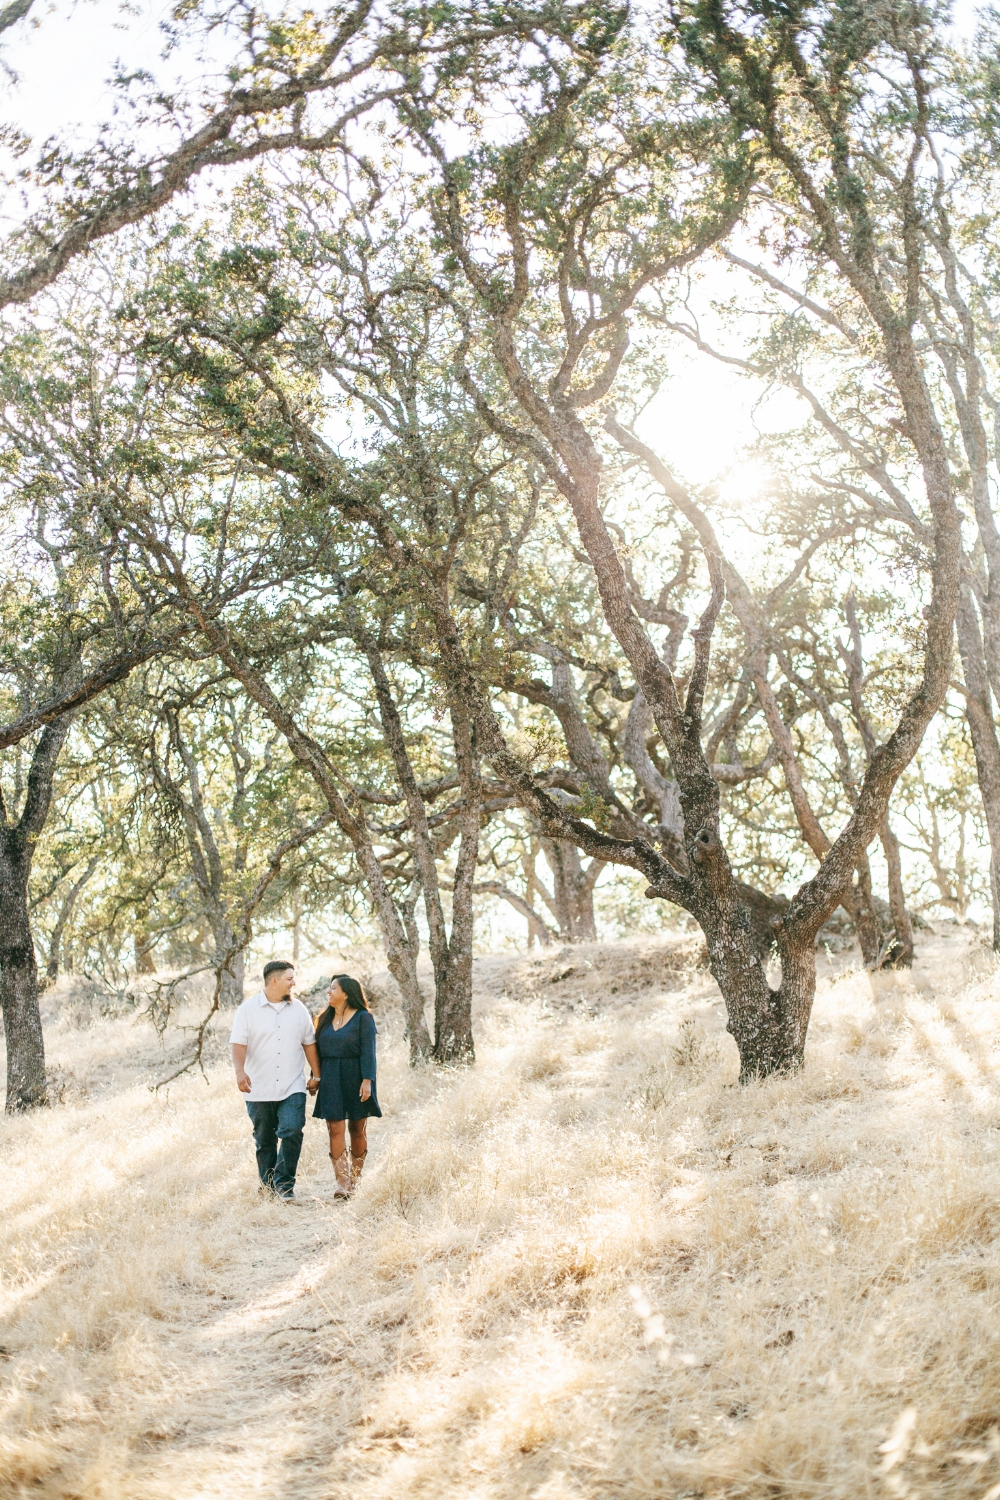 chris-diana-engagement-session-in-walnut-creek-california-01